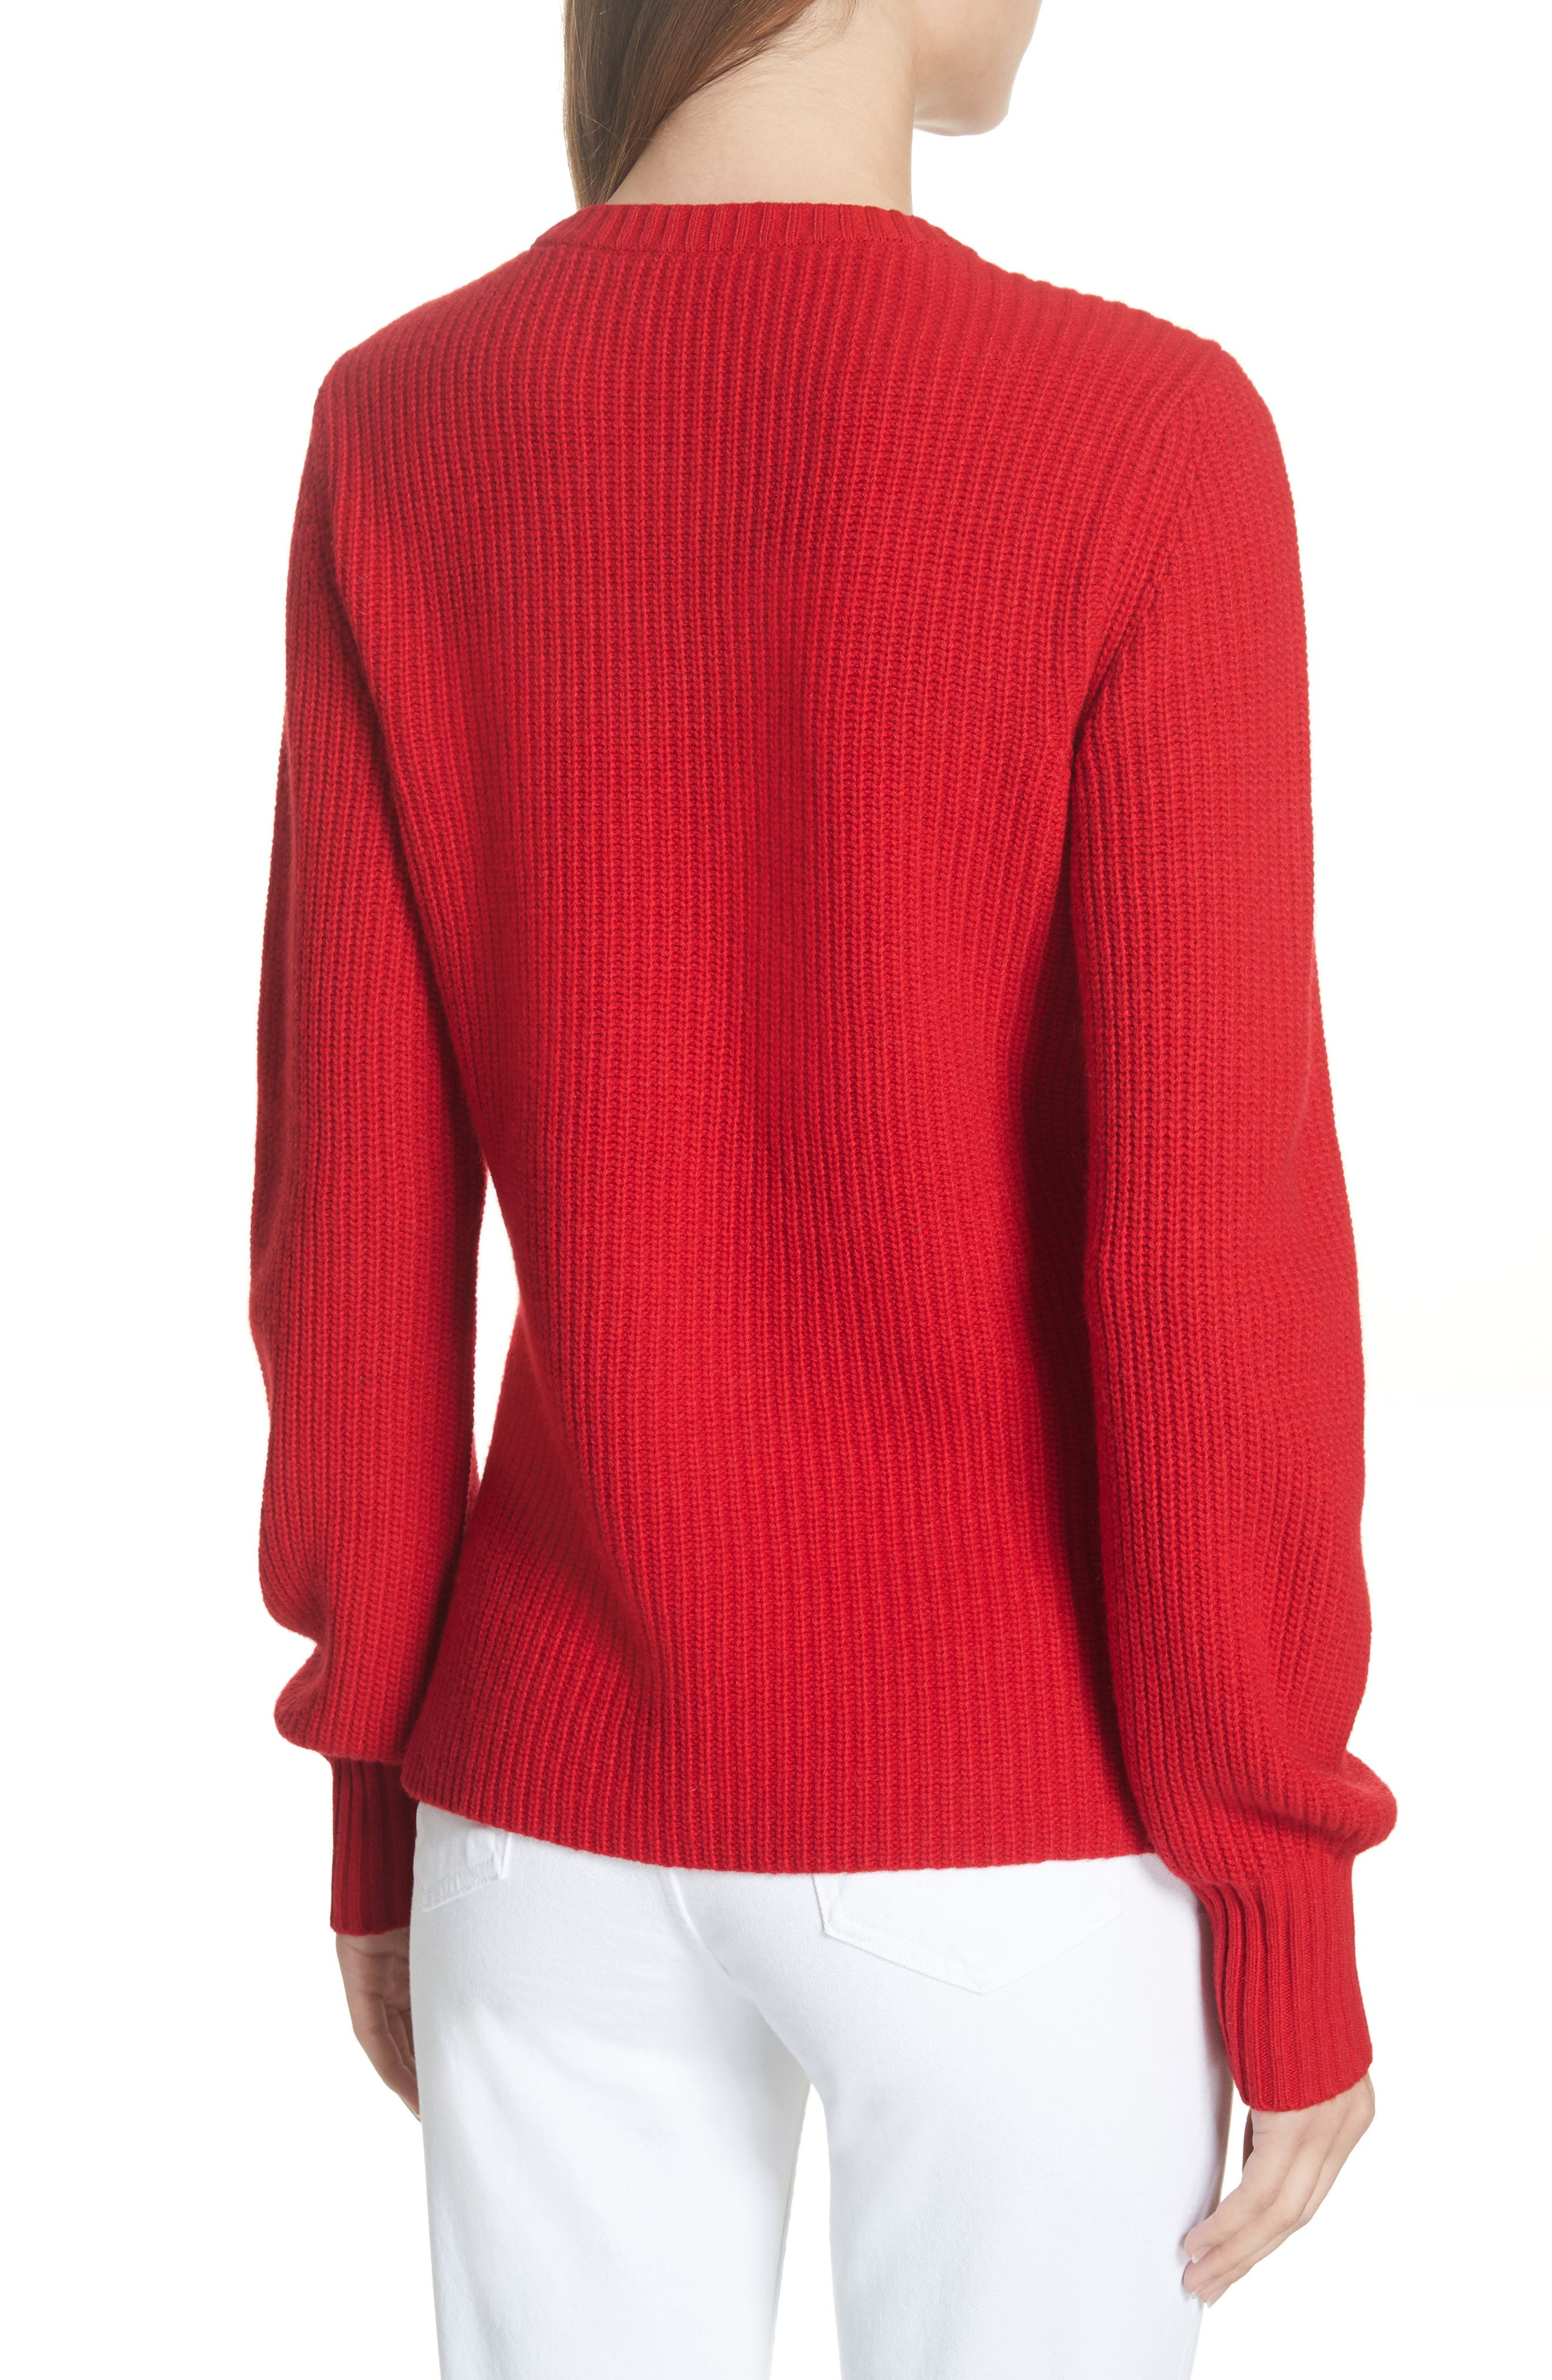 Kennedy Shaker Stitch Sweater,                             Alternate thumbnail 2, color,                             TRUE RED